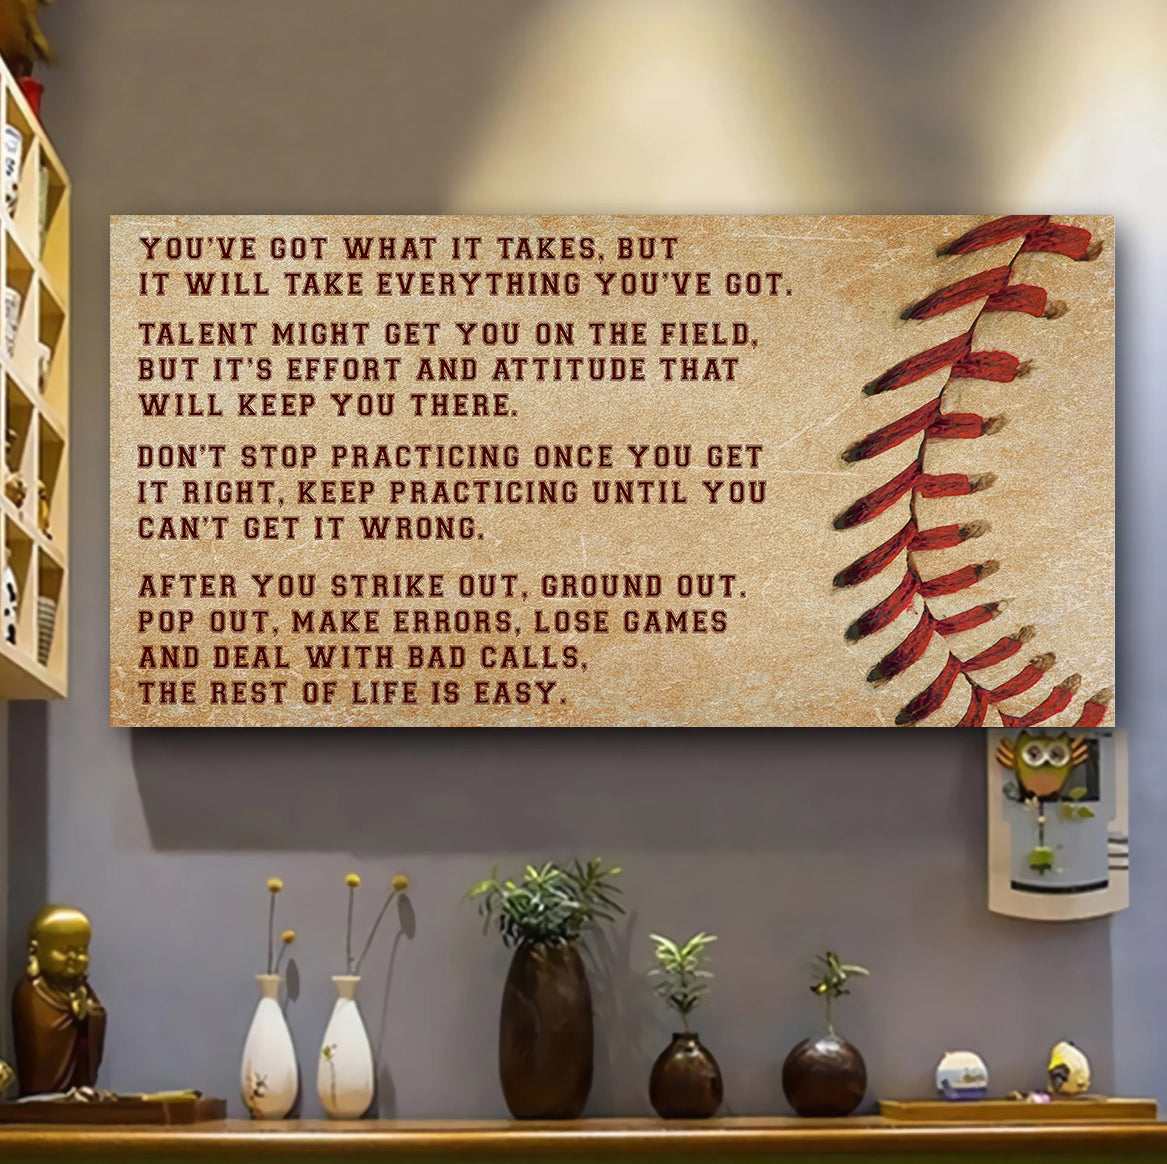 (LP350) Customizable Baseball Canvas - You've got - FREE SHIPPING ON ORDERS OVER $75